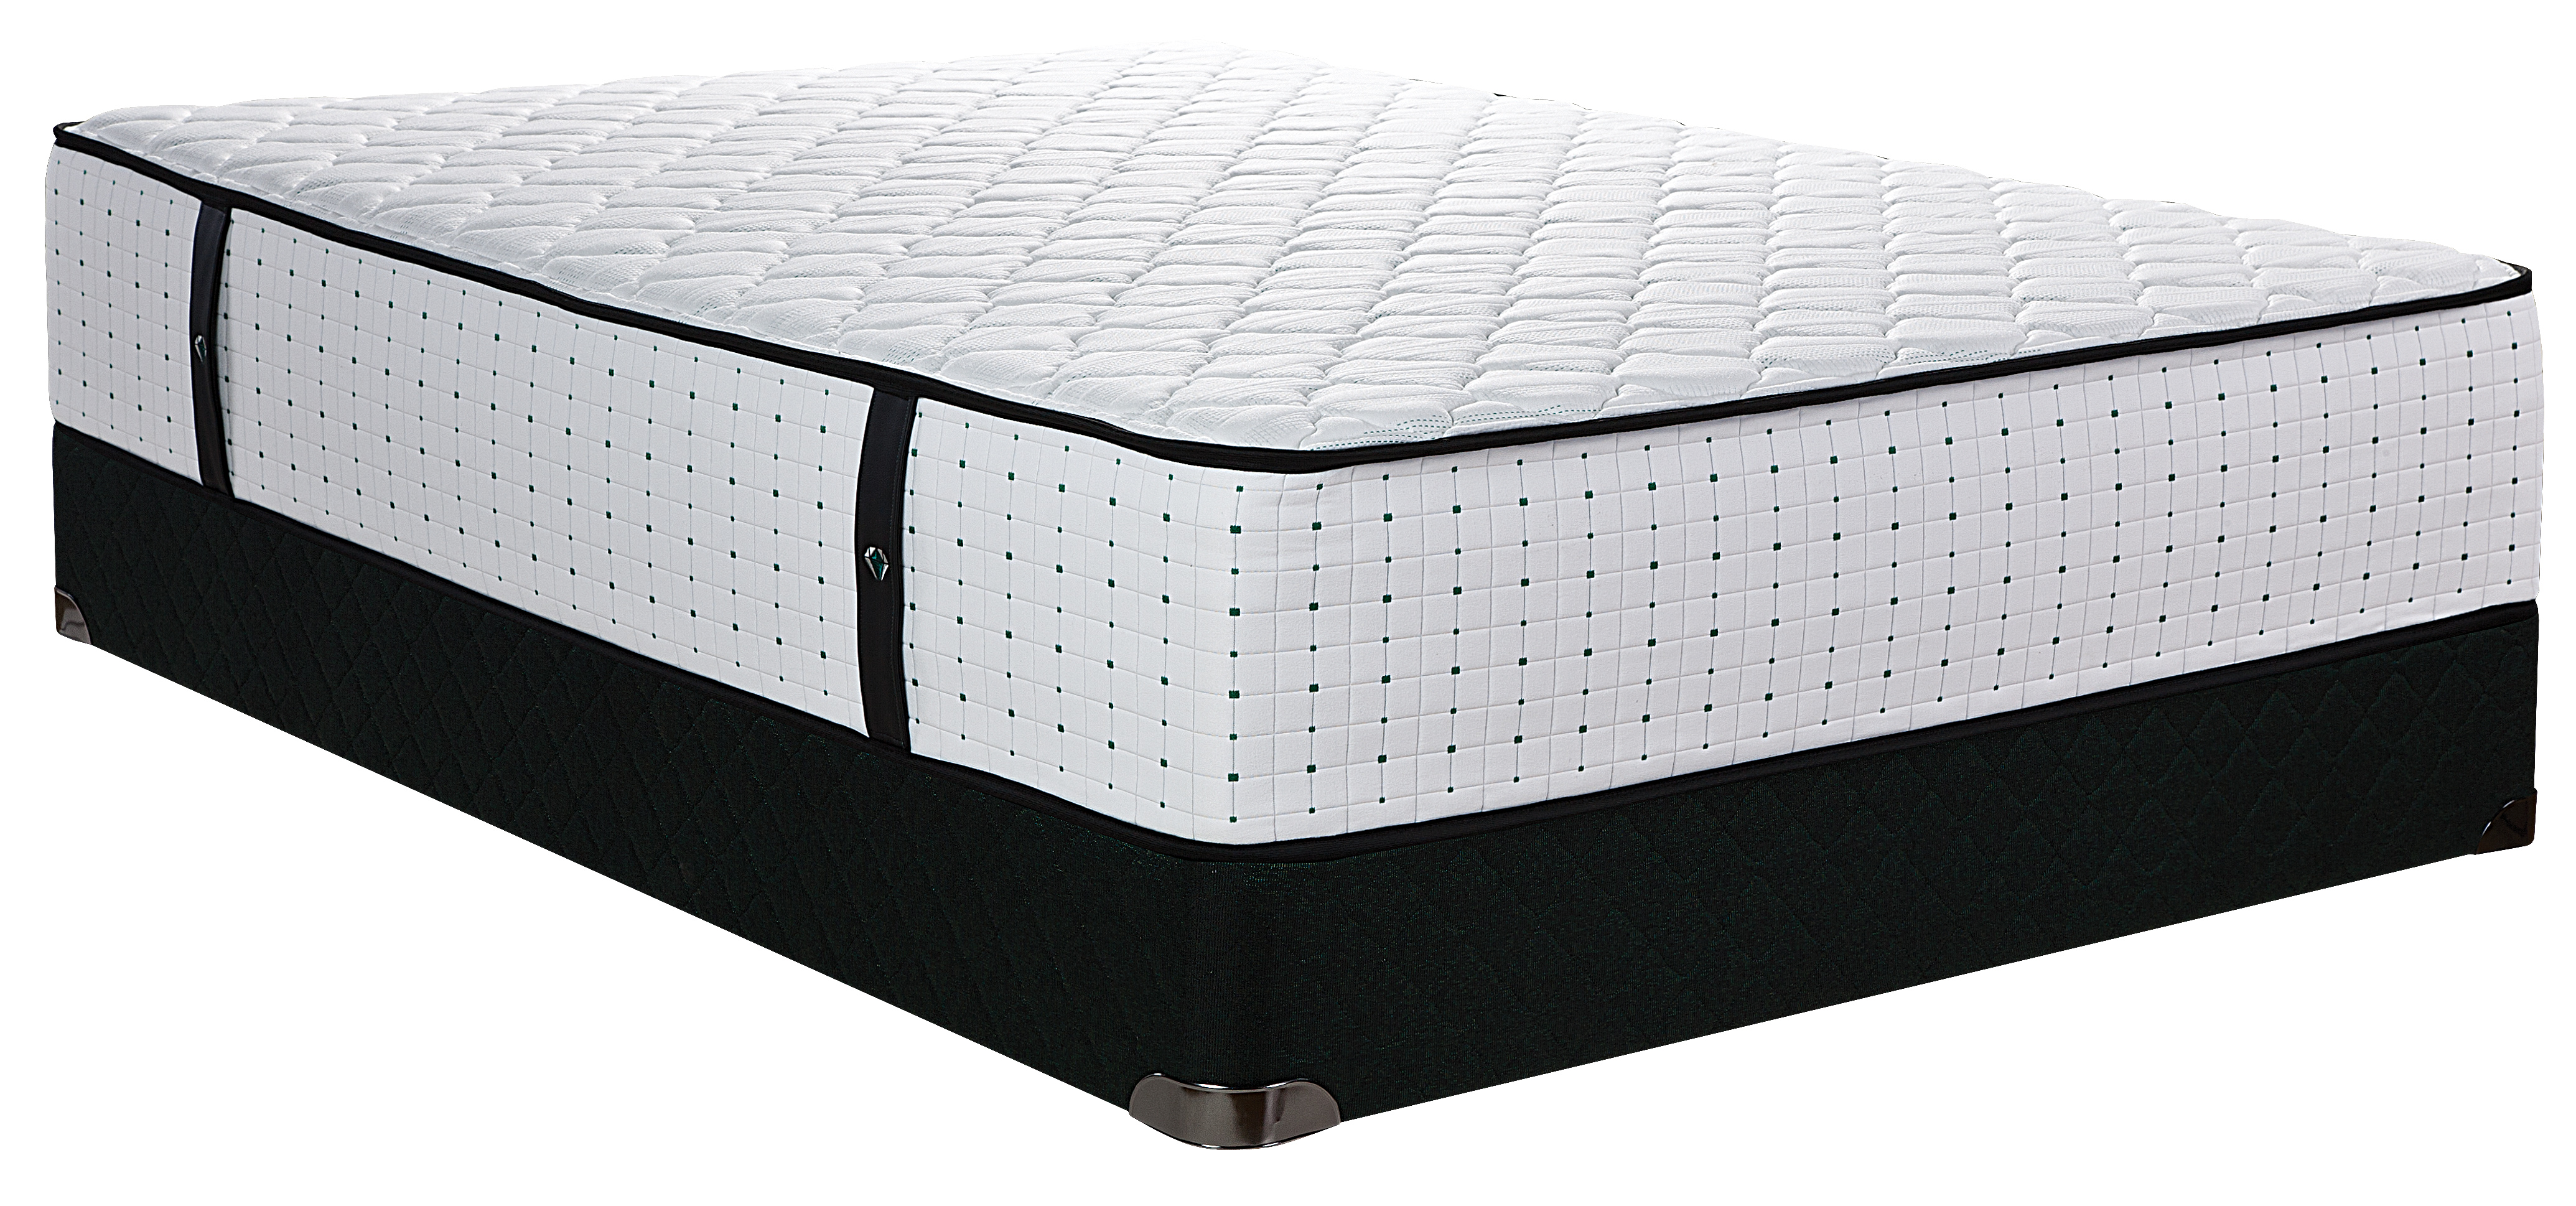 ortho collection american orthopedic chiro freight mattress recommended chiropractor